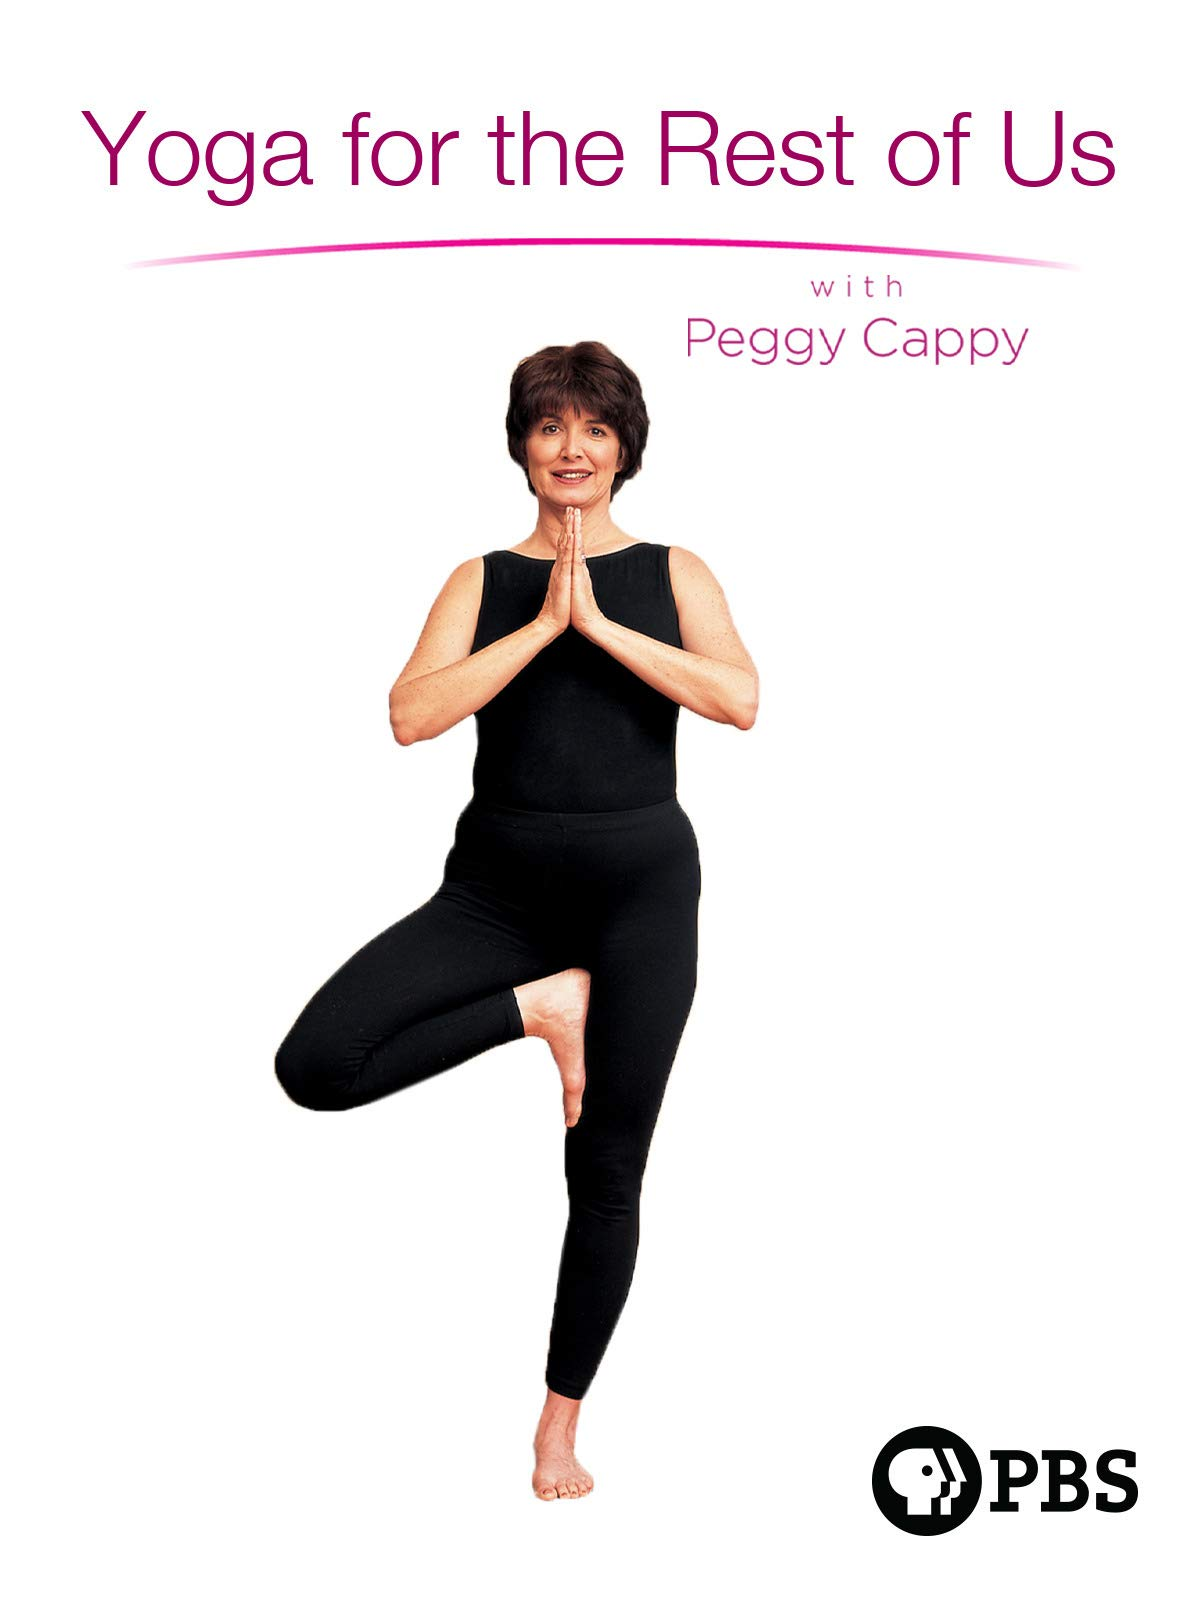 Amazon.com: Yoga for the Rest of Us: with Peggy Cappy, A ...